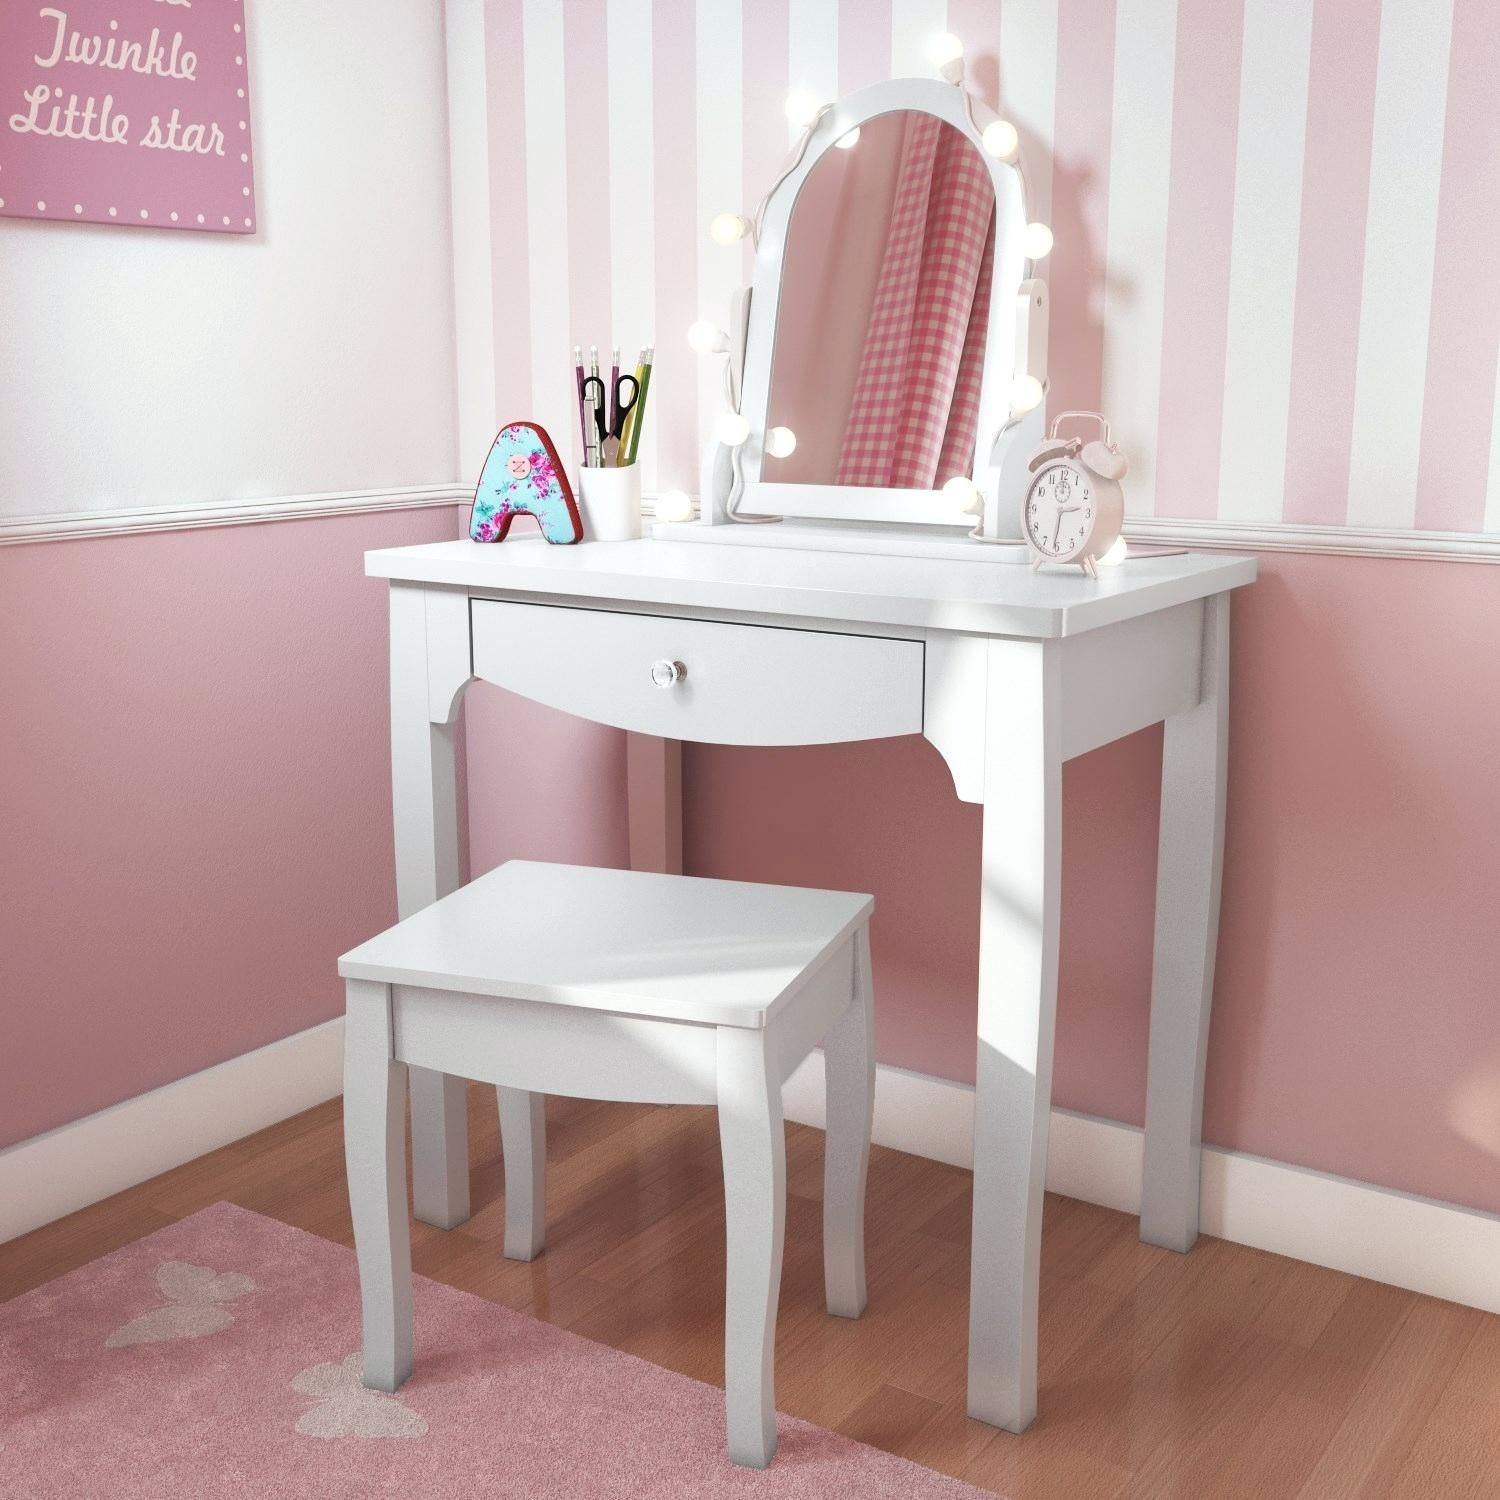 Girls Dressing Table Girls Vanity Table And Stool Girls White Dressing Table With Stool